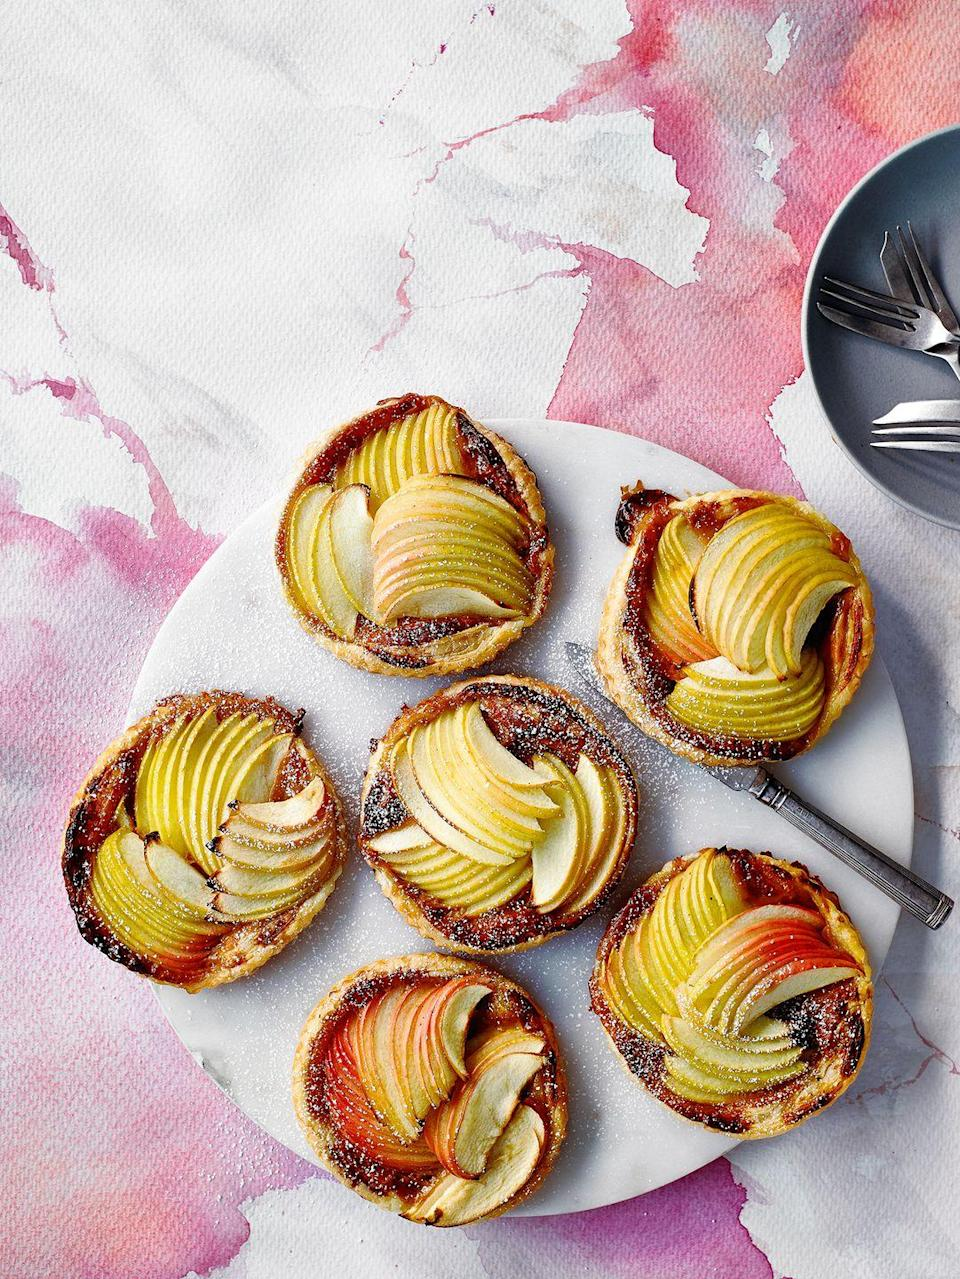 """<p>So delicious and impressive, your guests will never know you took shortcuts! These taste great with a ball of vanilla ice cream or some pouring cream.</p><p><strong>Recipe: <a href=""""https://www.goodhousekeeping.com/uk/food/recipes/a26943008/easy-apple-tart/"""" rel=""""nofollow noopener"""" target=""""_blank"""" data-ylk=""""slk:Easy apple tarts"""" class=""""link rapid-noclick-resp"""">Easy apple tarts</a></strong></p>"""